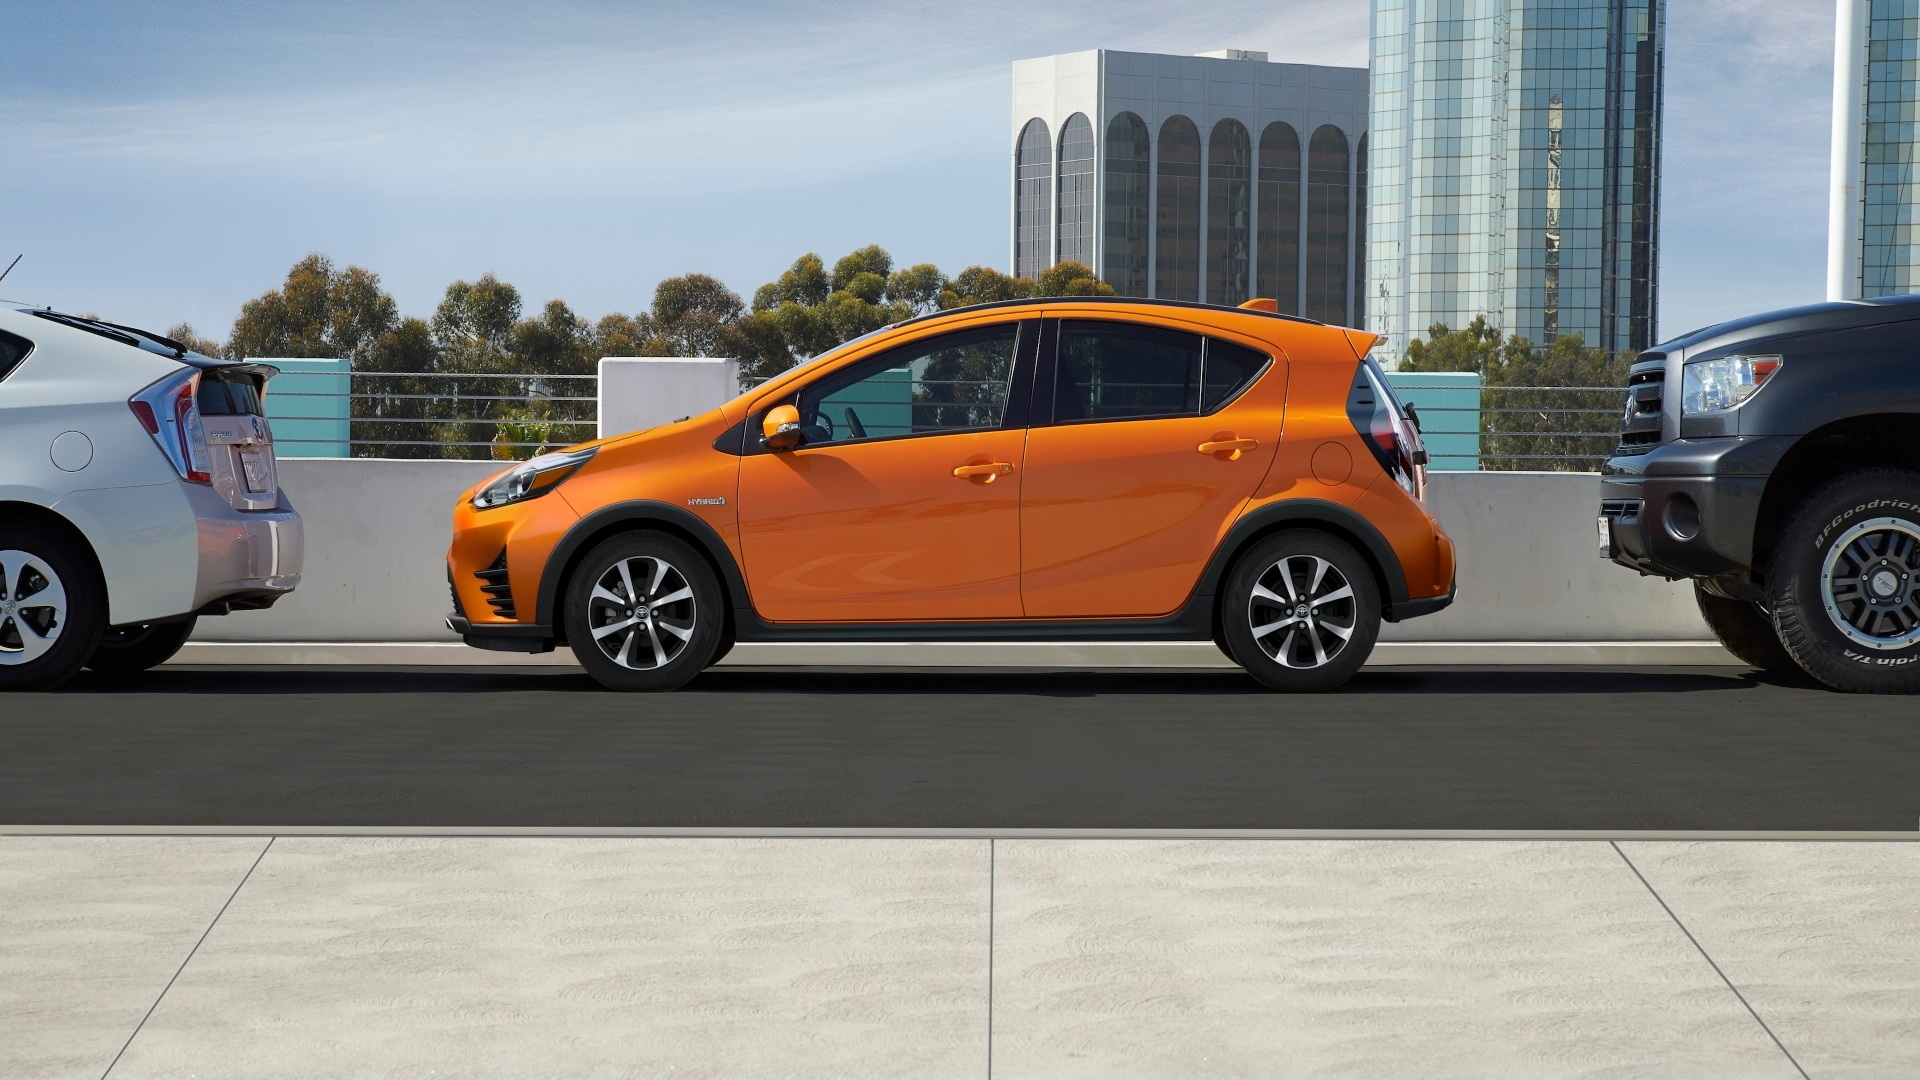 Toyota Prius C News - Green Car Photos, News, Reviews, and